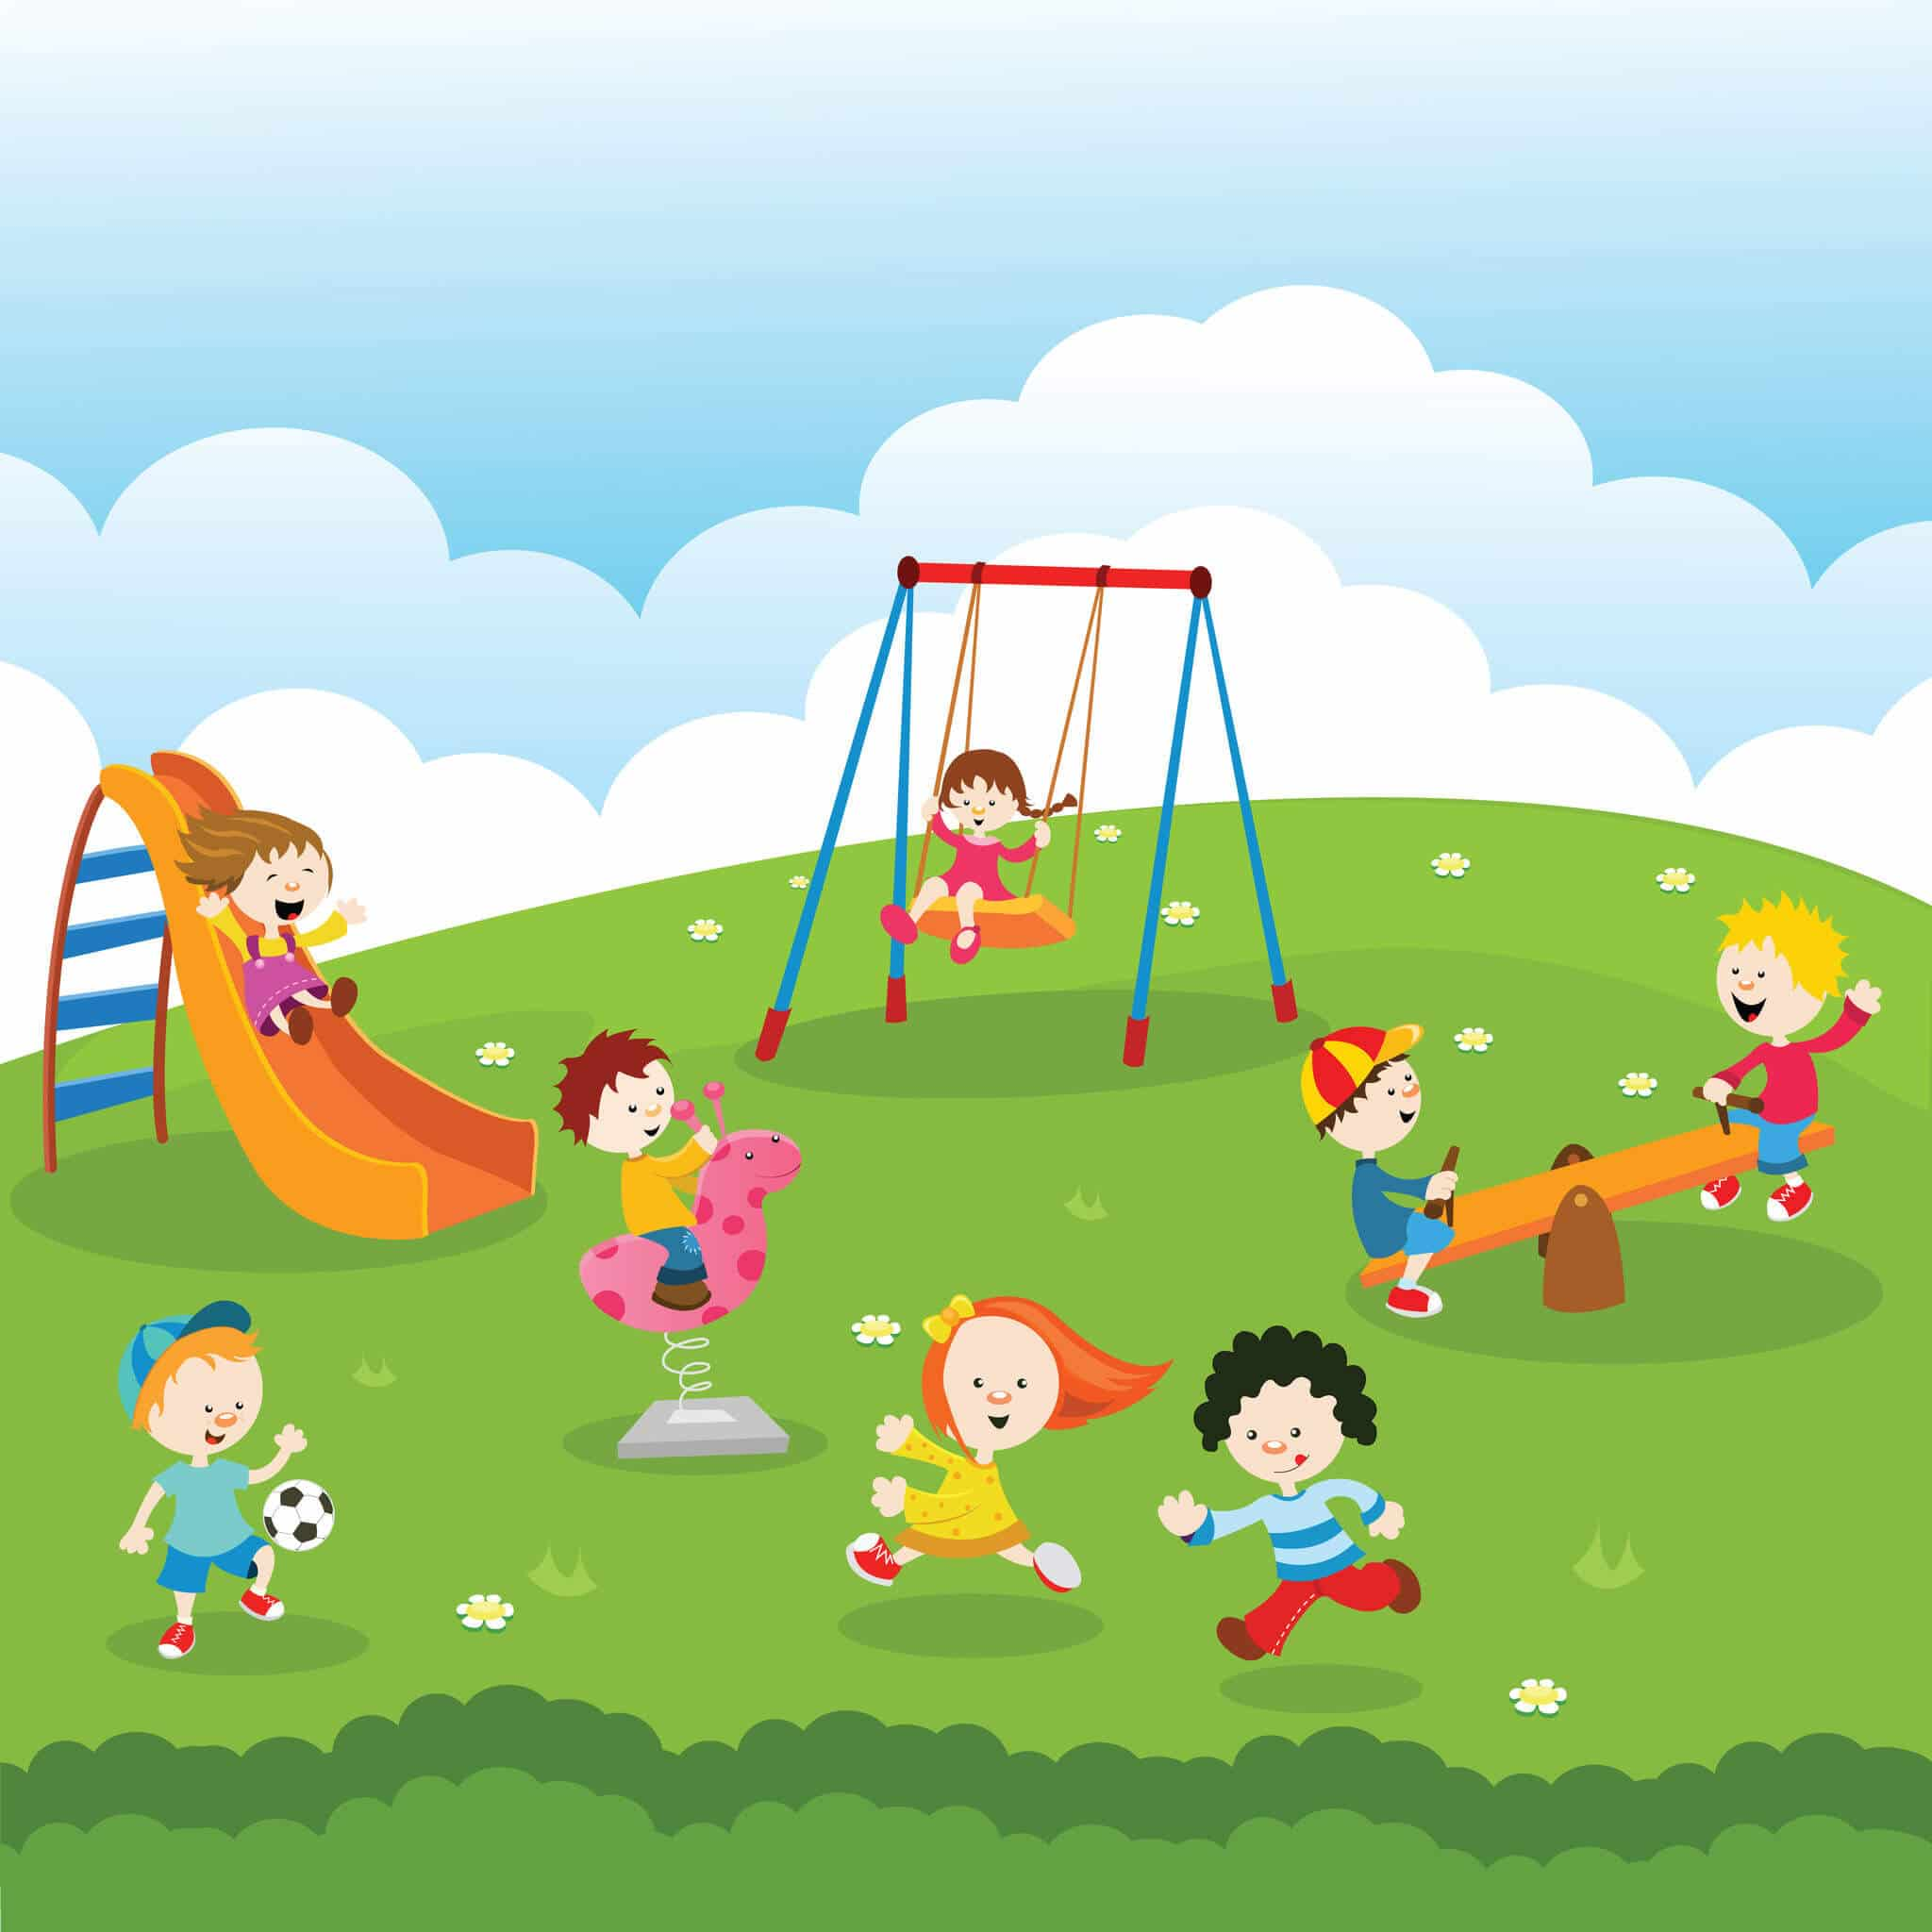 4 Social Media Marketing Lessons from a Day at the Park